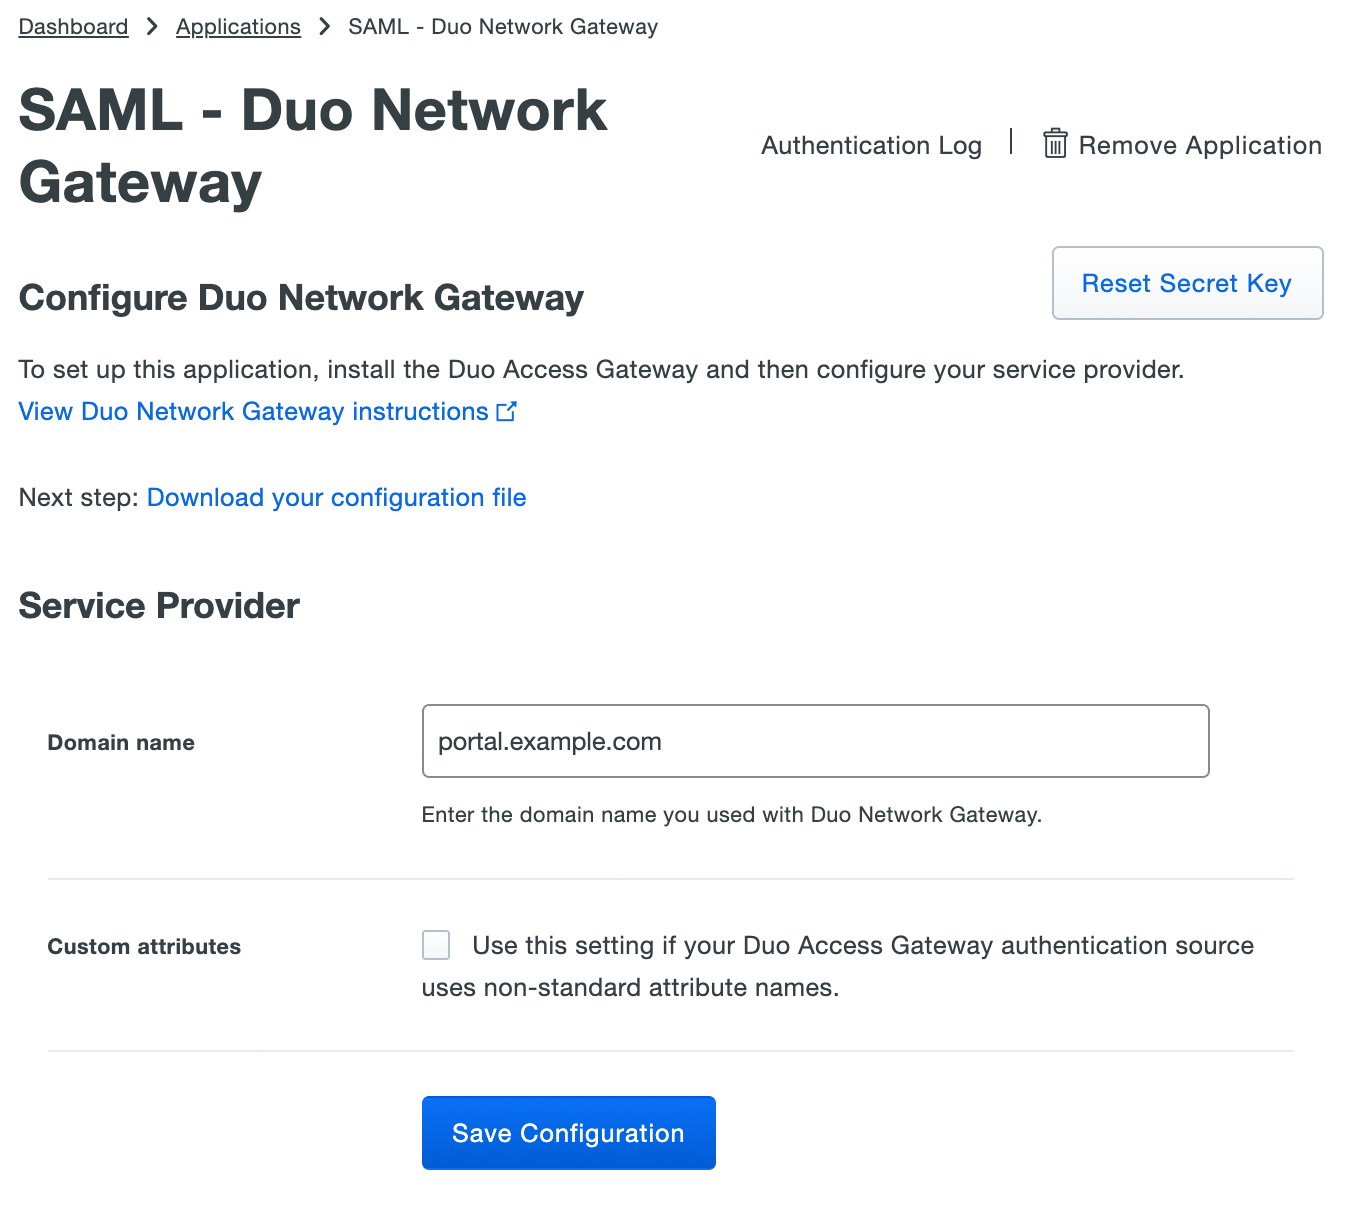 Duo Network Gateway Application Settings